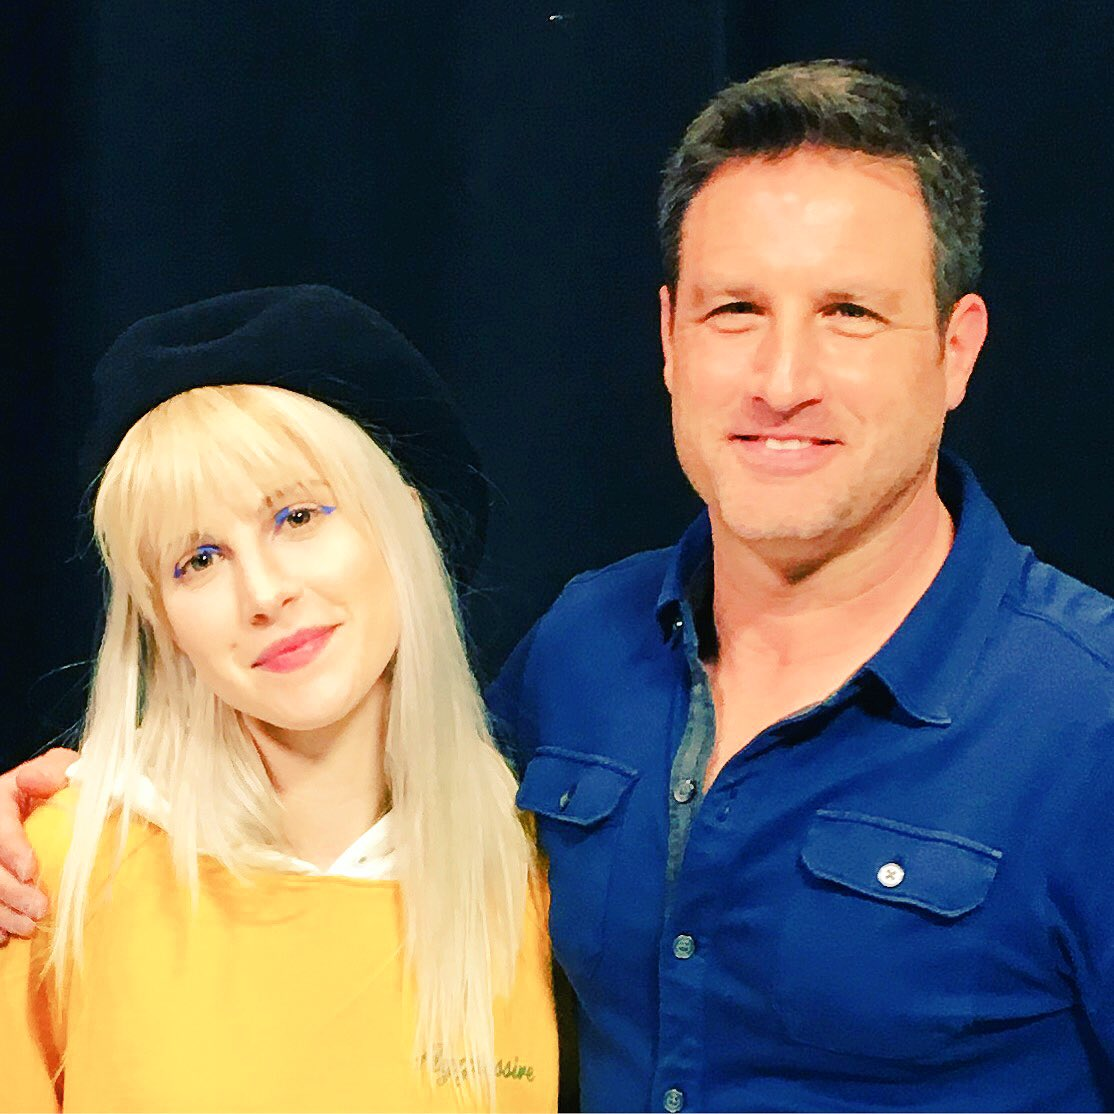 Thnx for a great day on set @yelyahwilliams can't wait for more @paramore